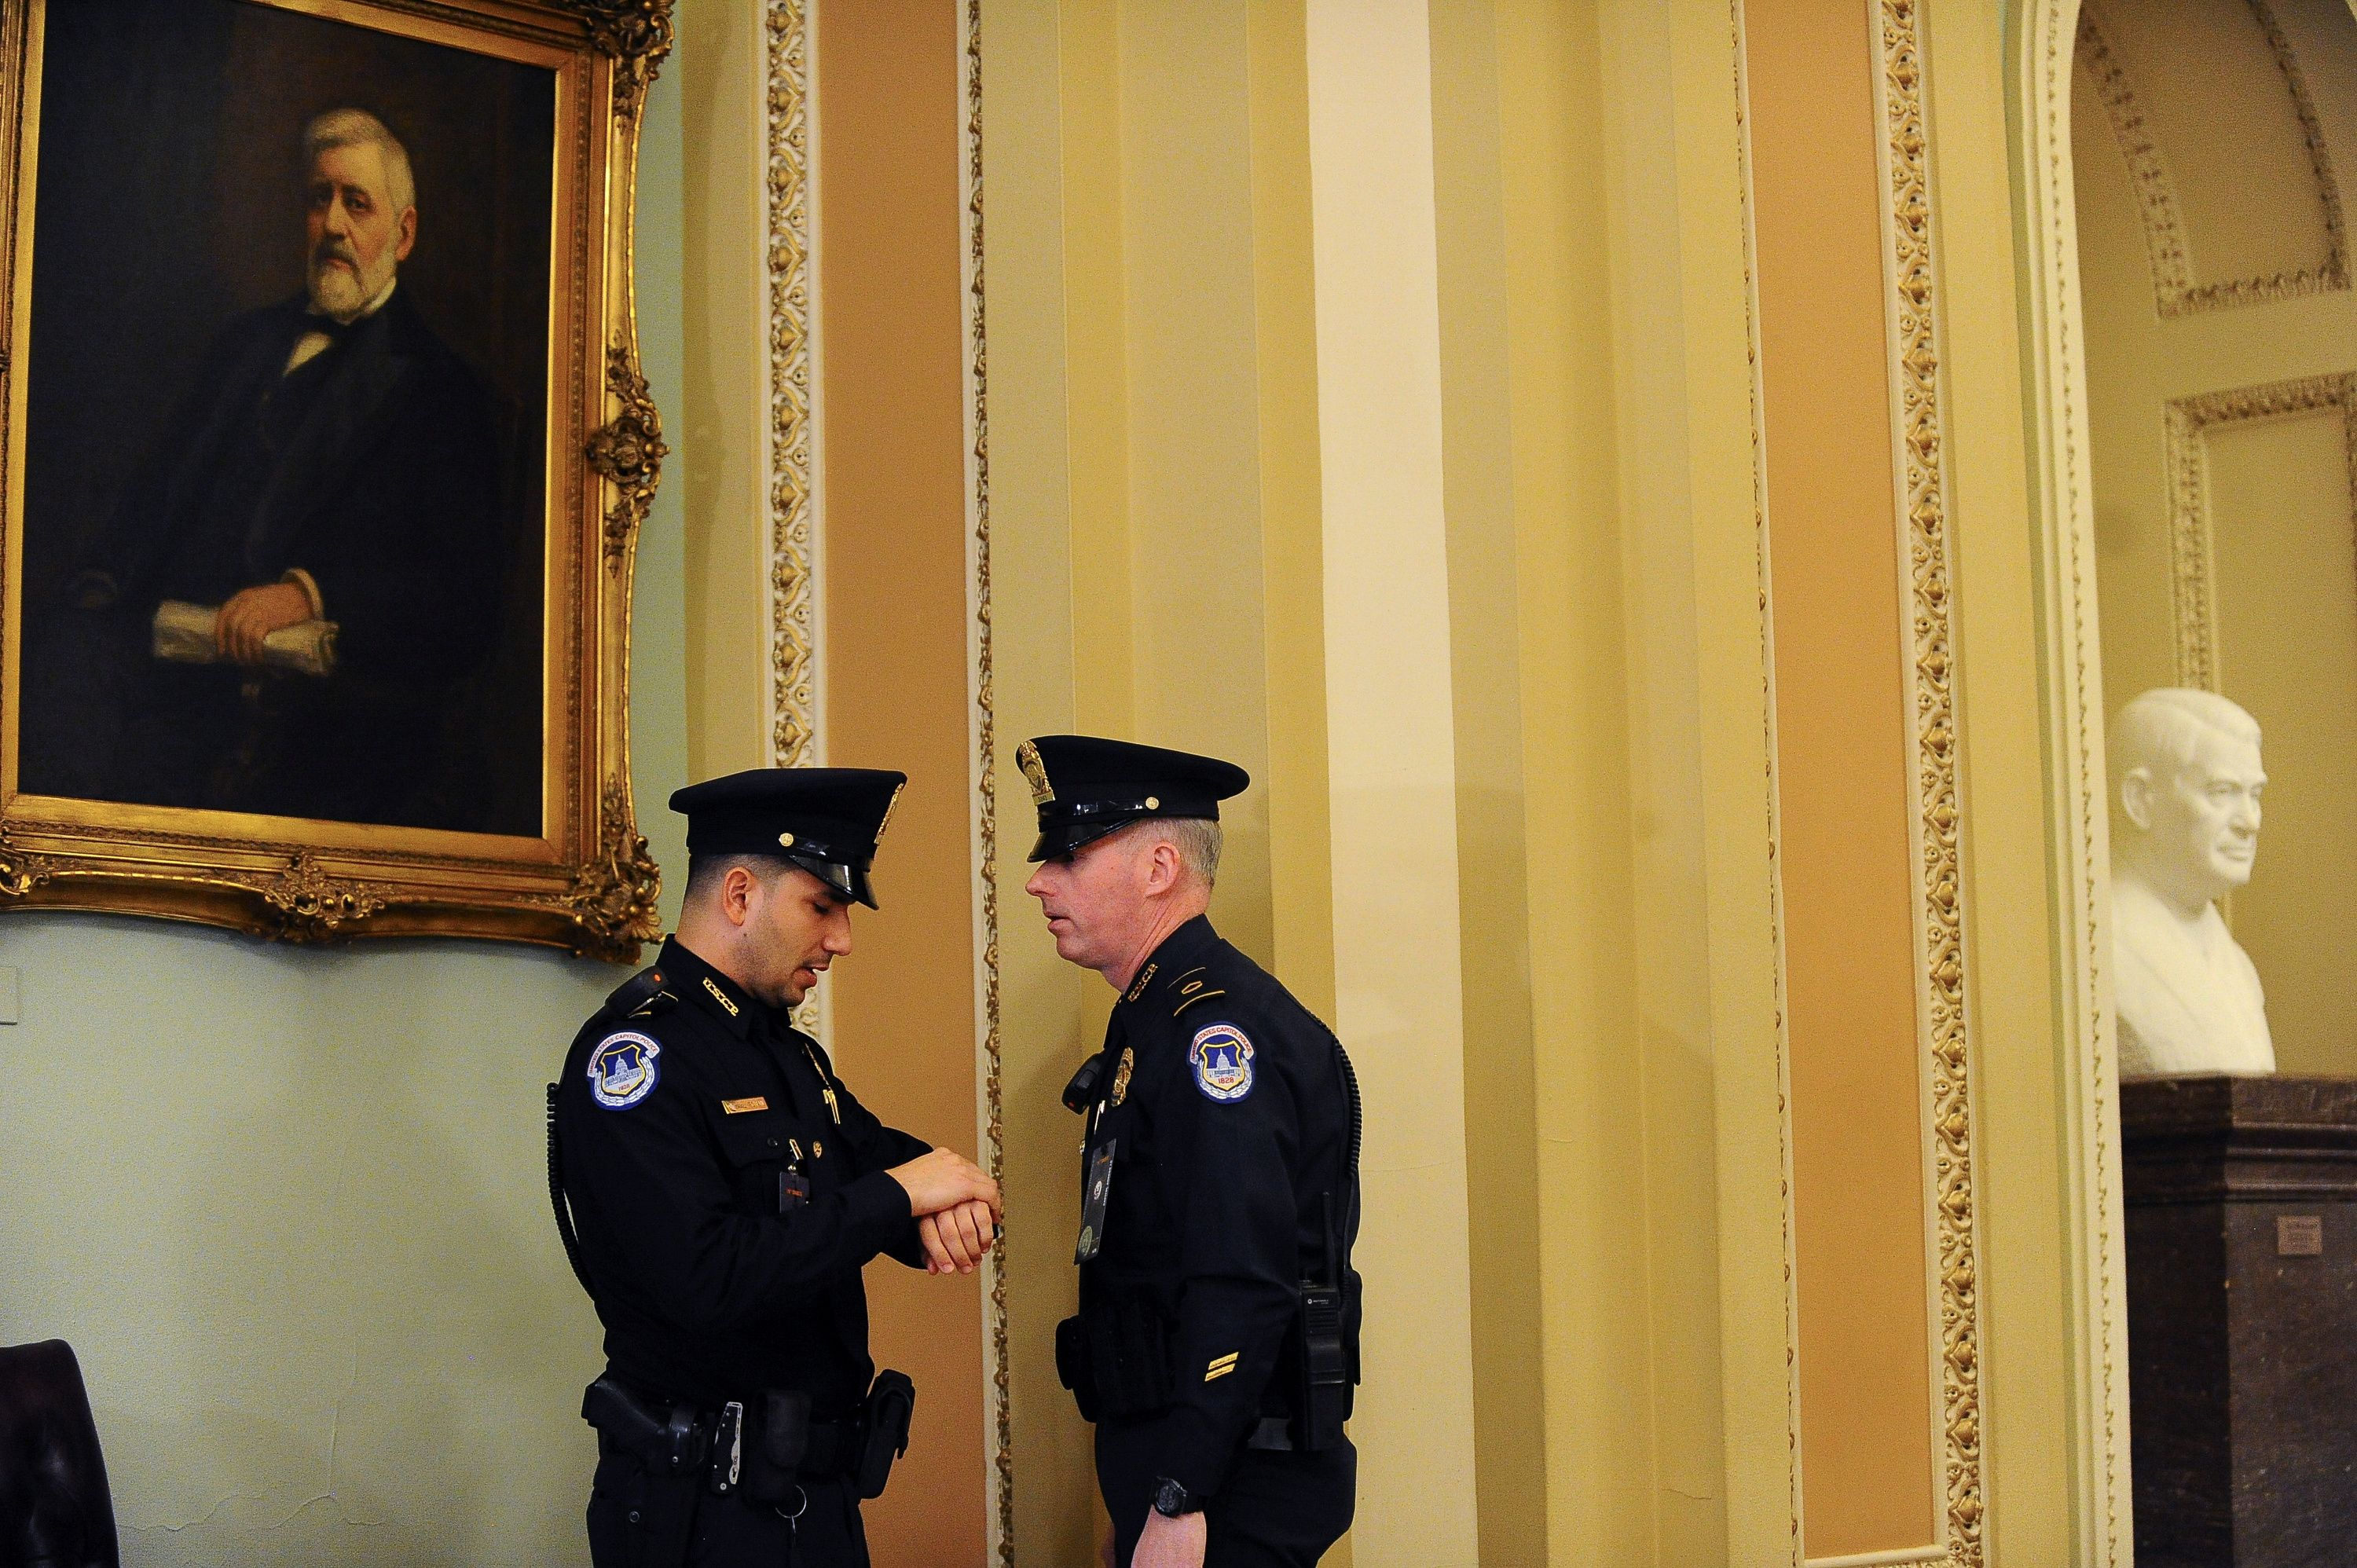 Please do not touch me: U.S. Senate on security alert for Trump impeachment trial